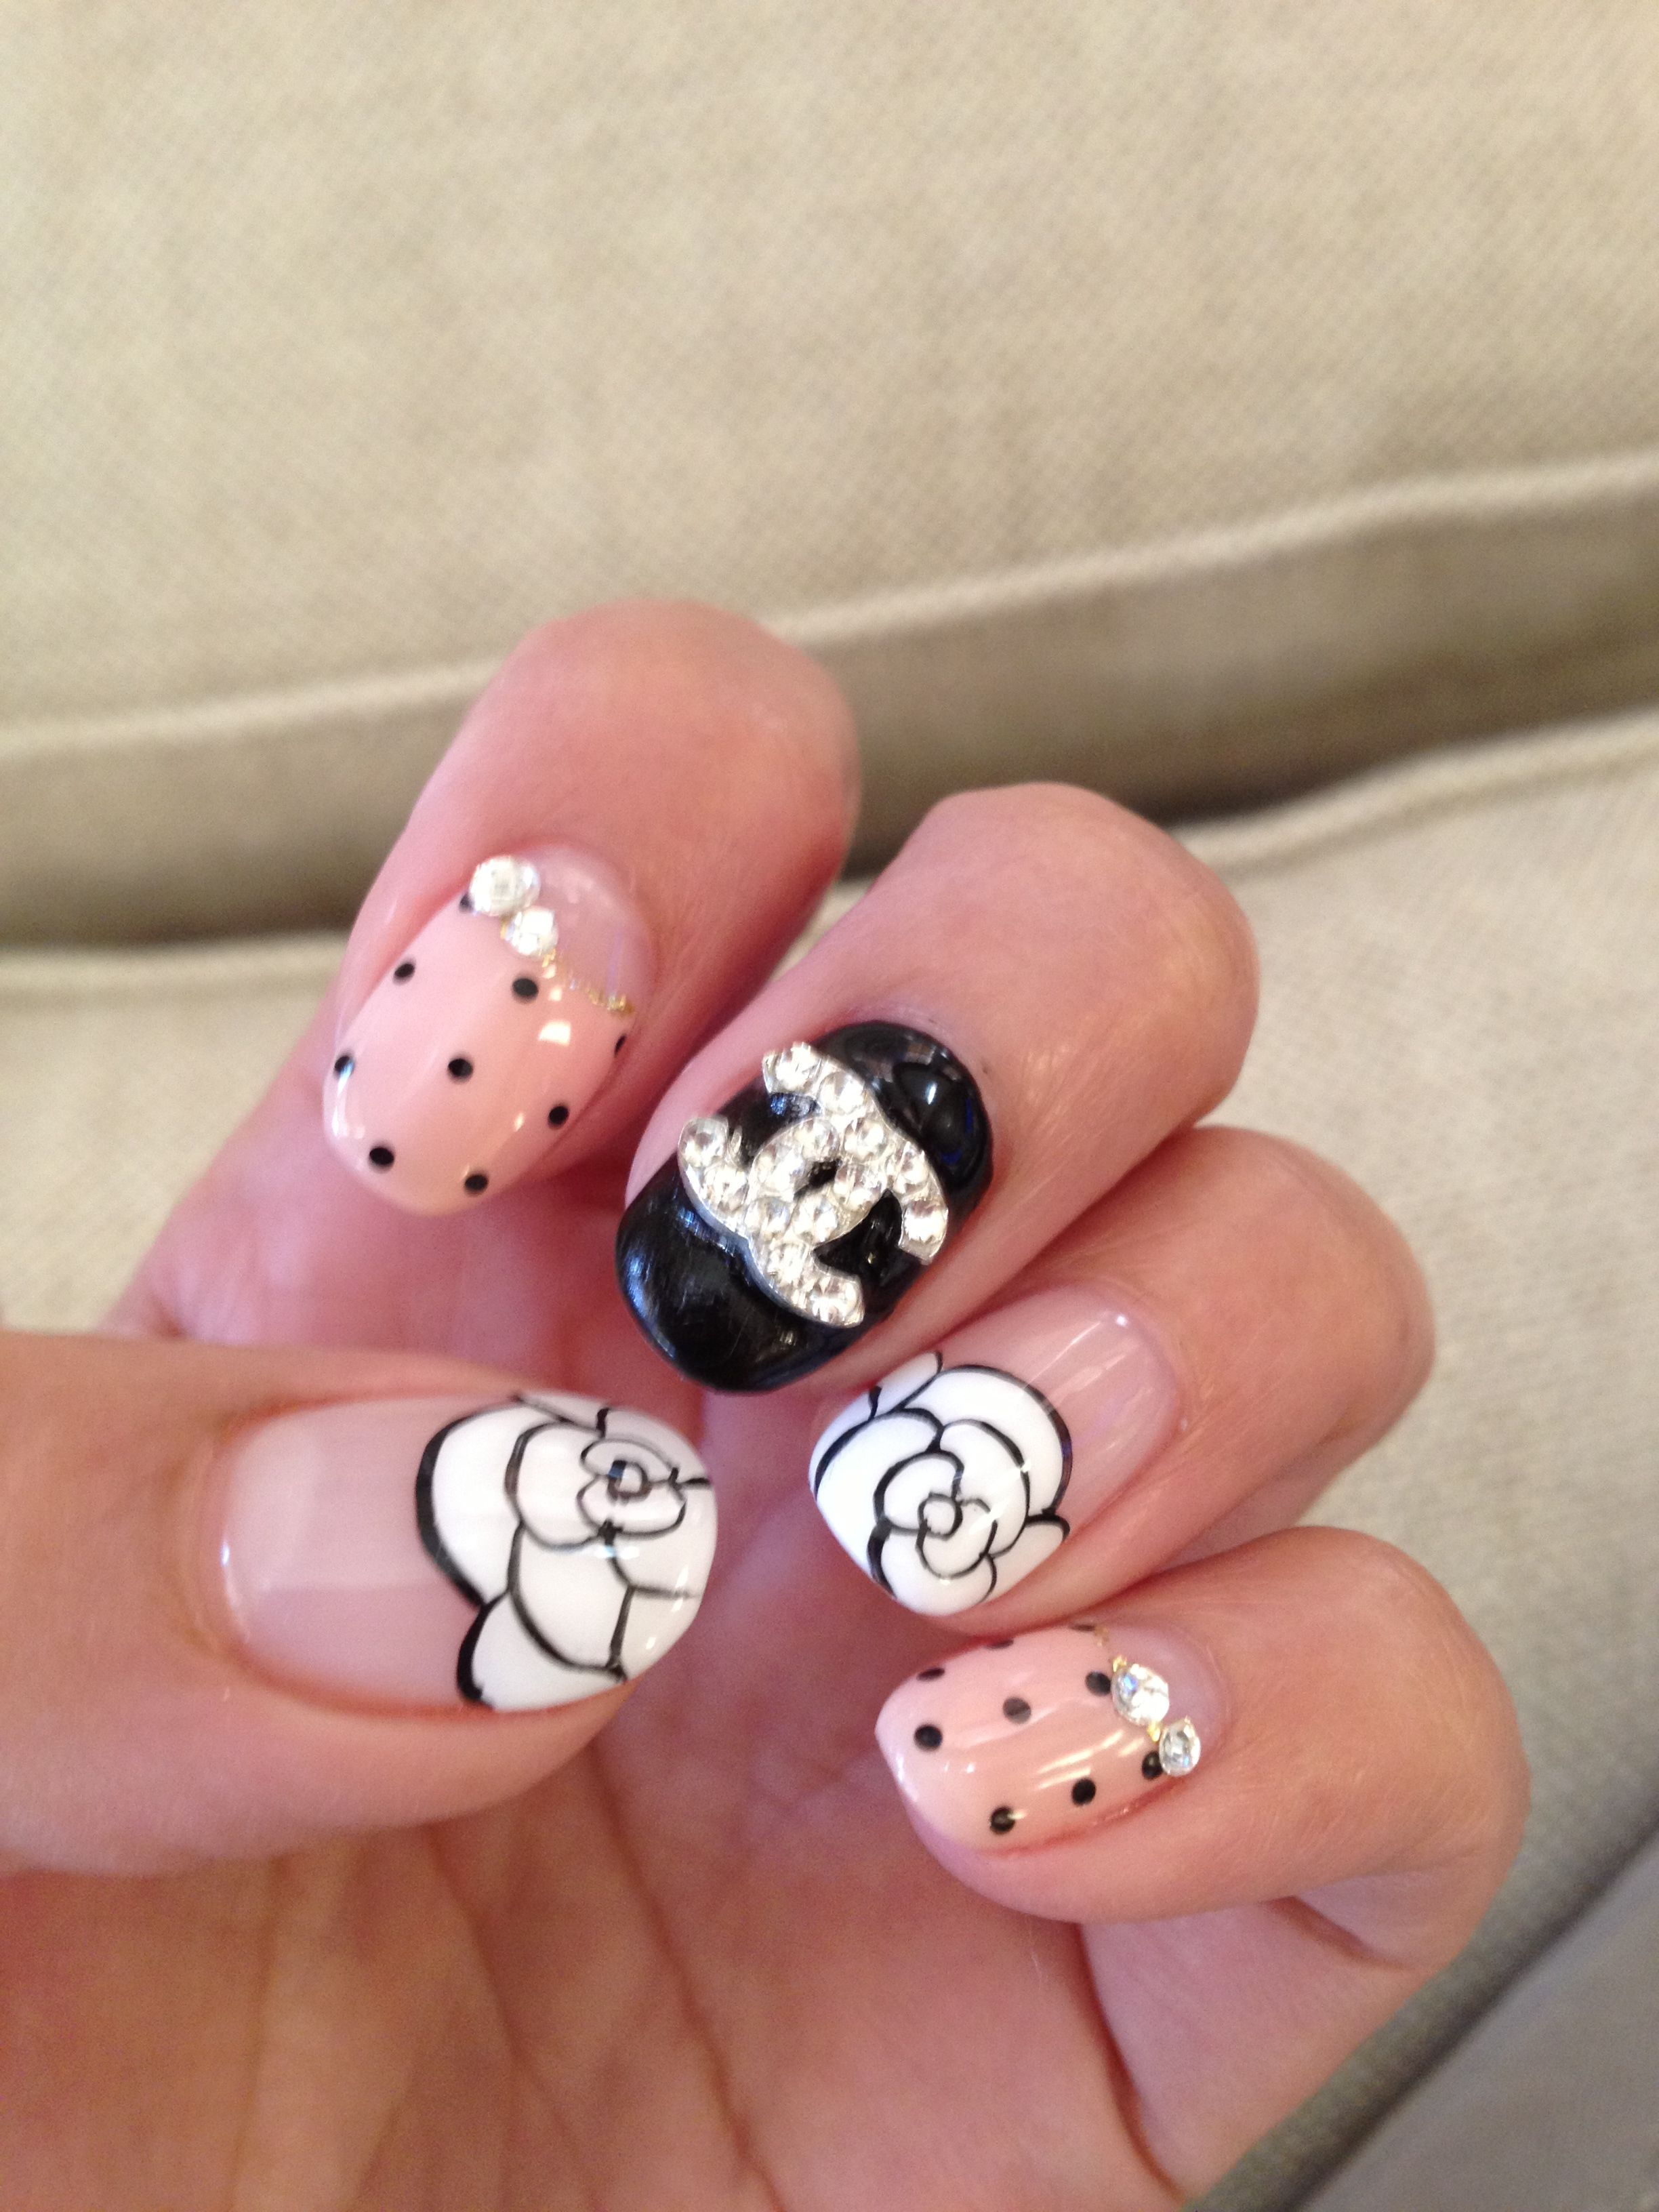 But not so crazy. Just the flower n nude w dots | Nails | Pinterest ...